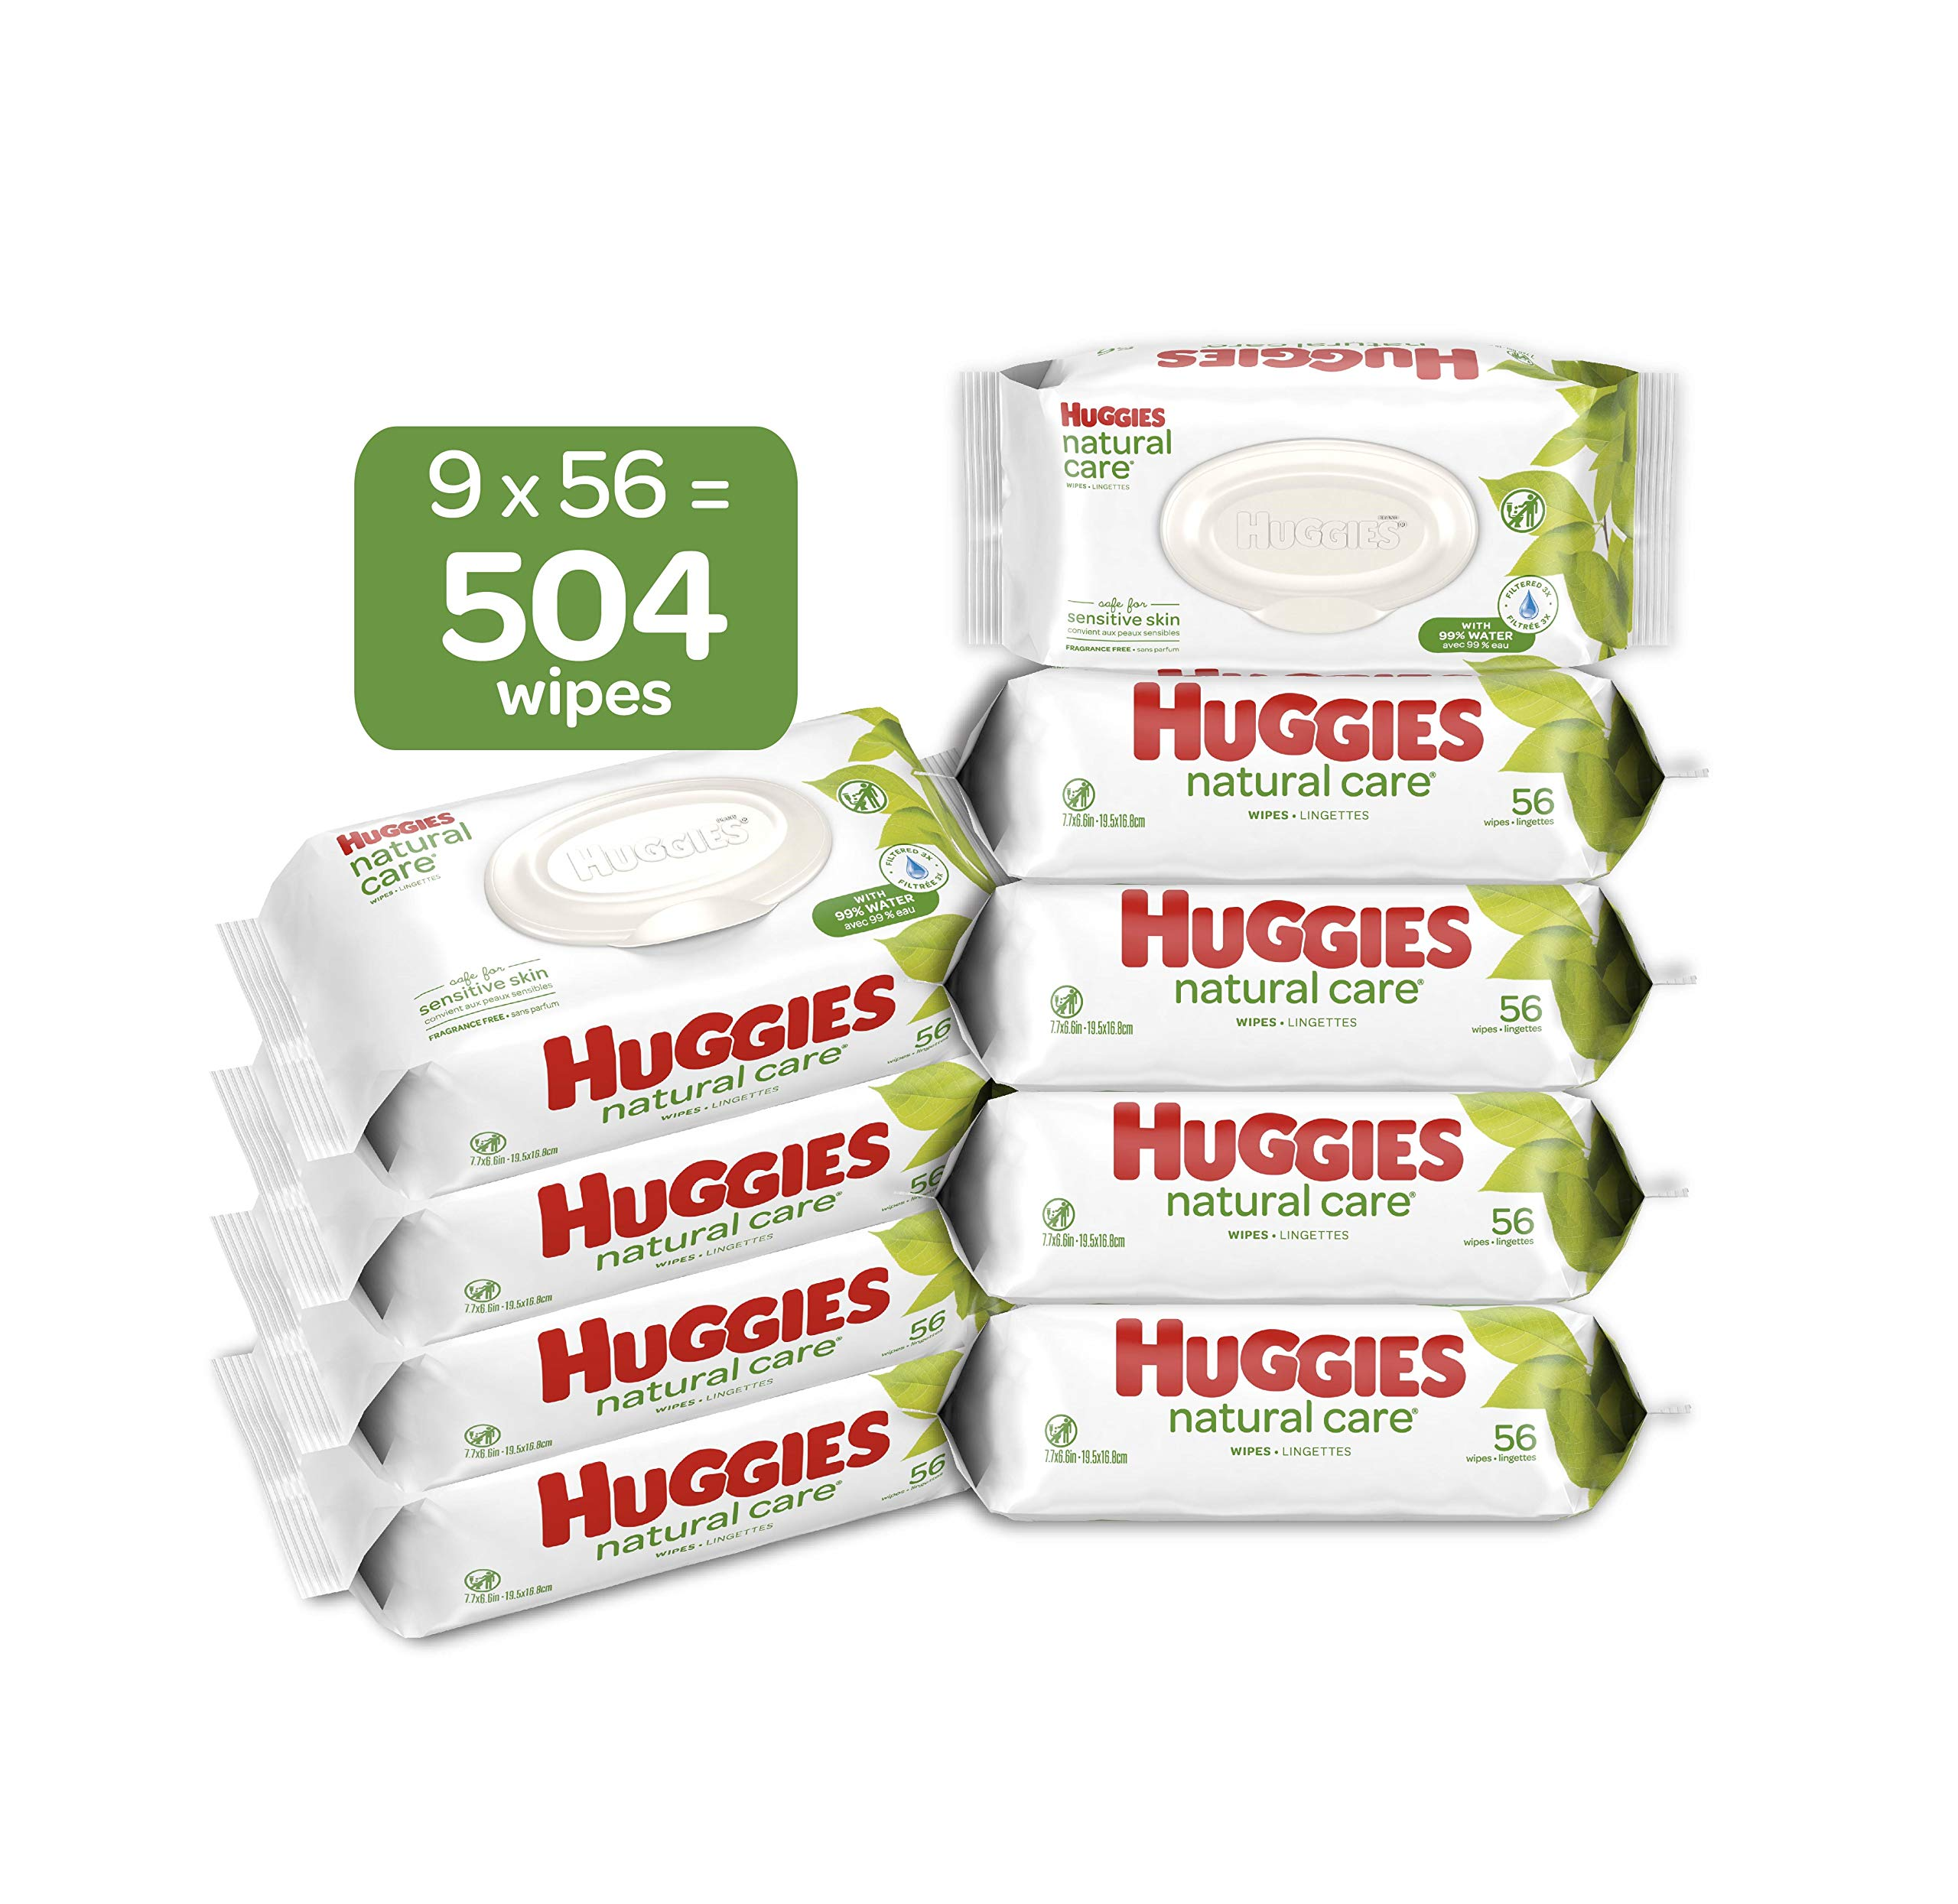 HUGGIES Natural Care Unscented Baby Wipes, Sensitive, Water-Based